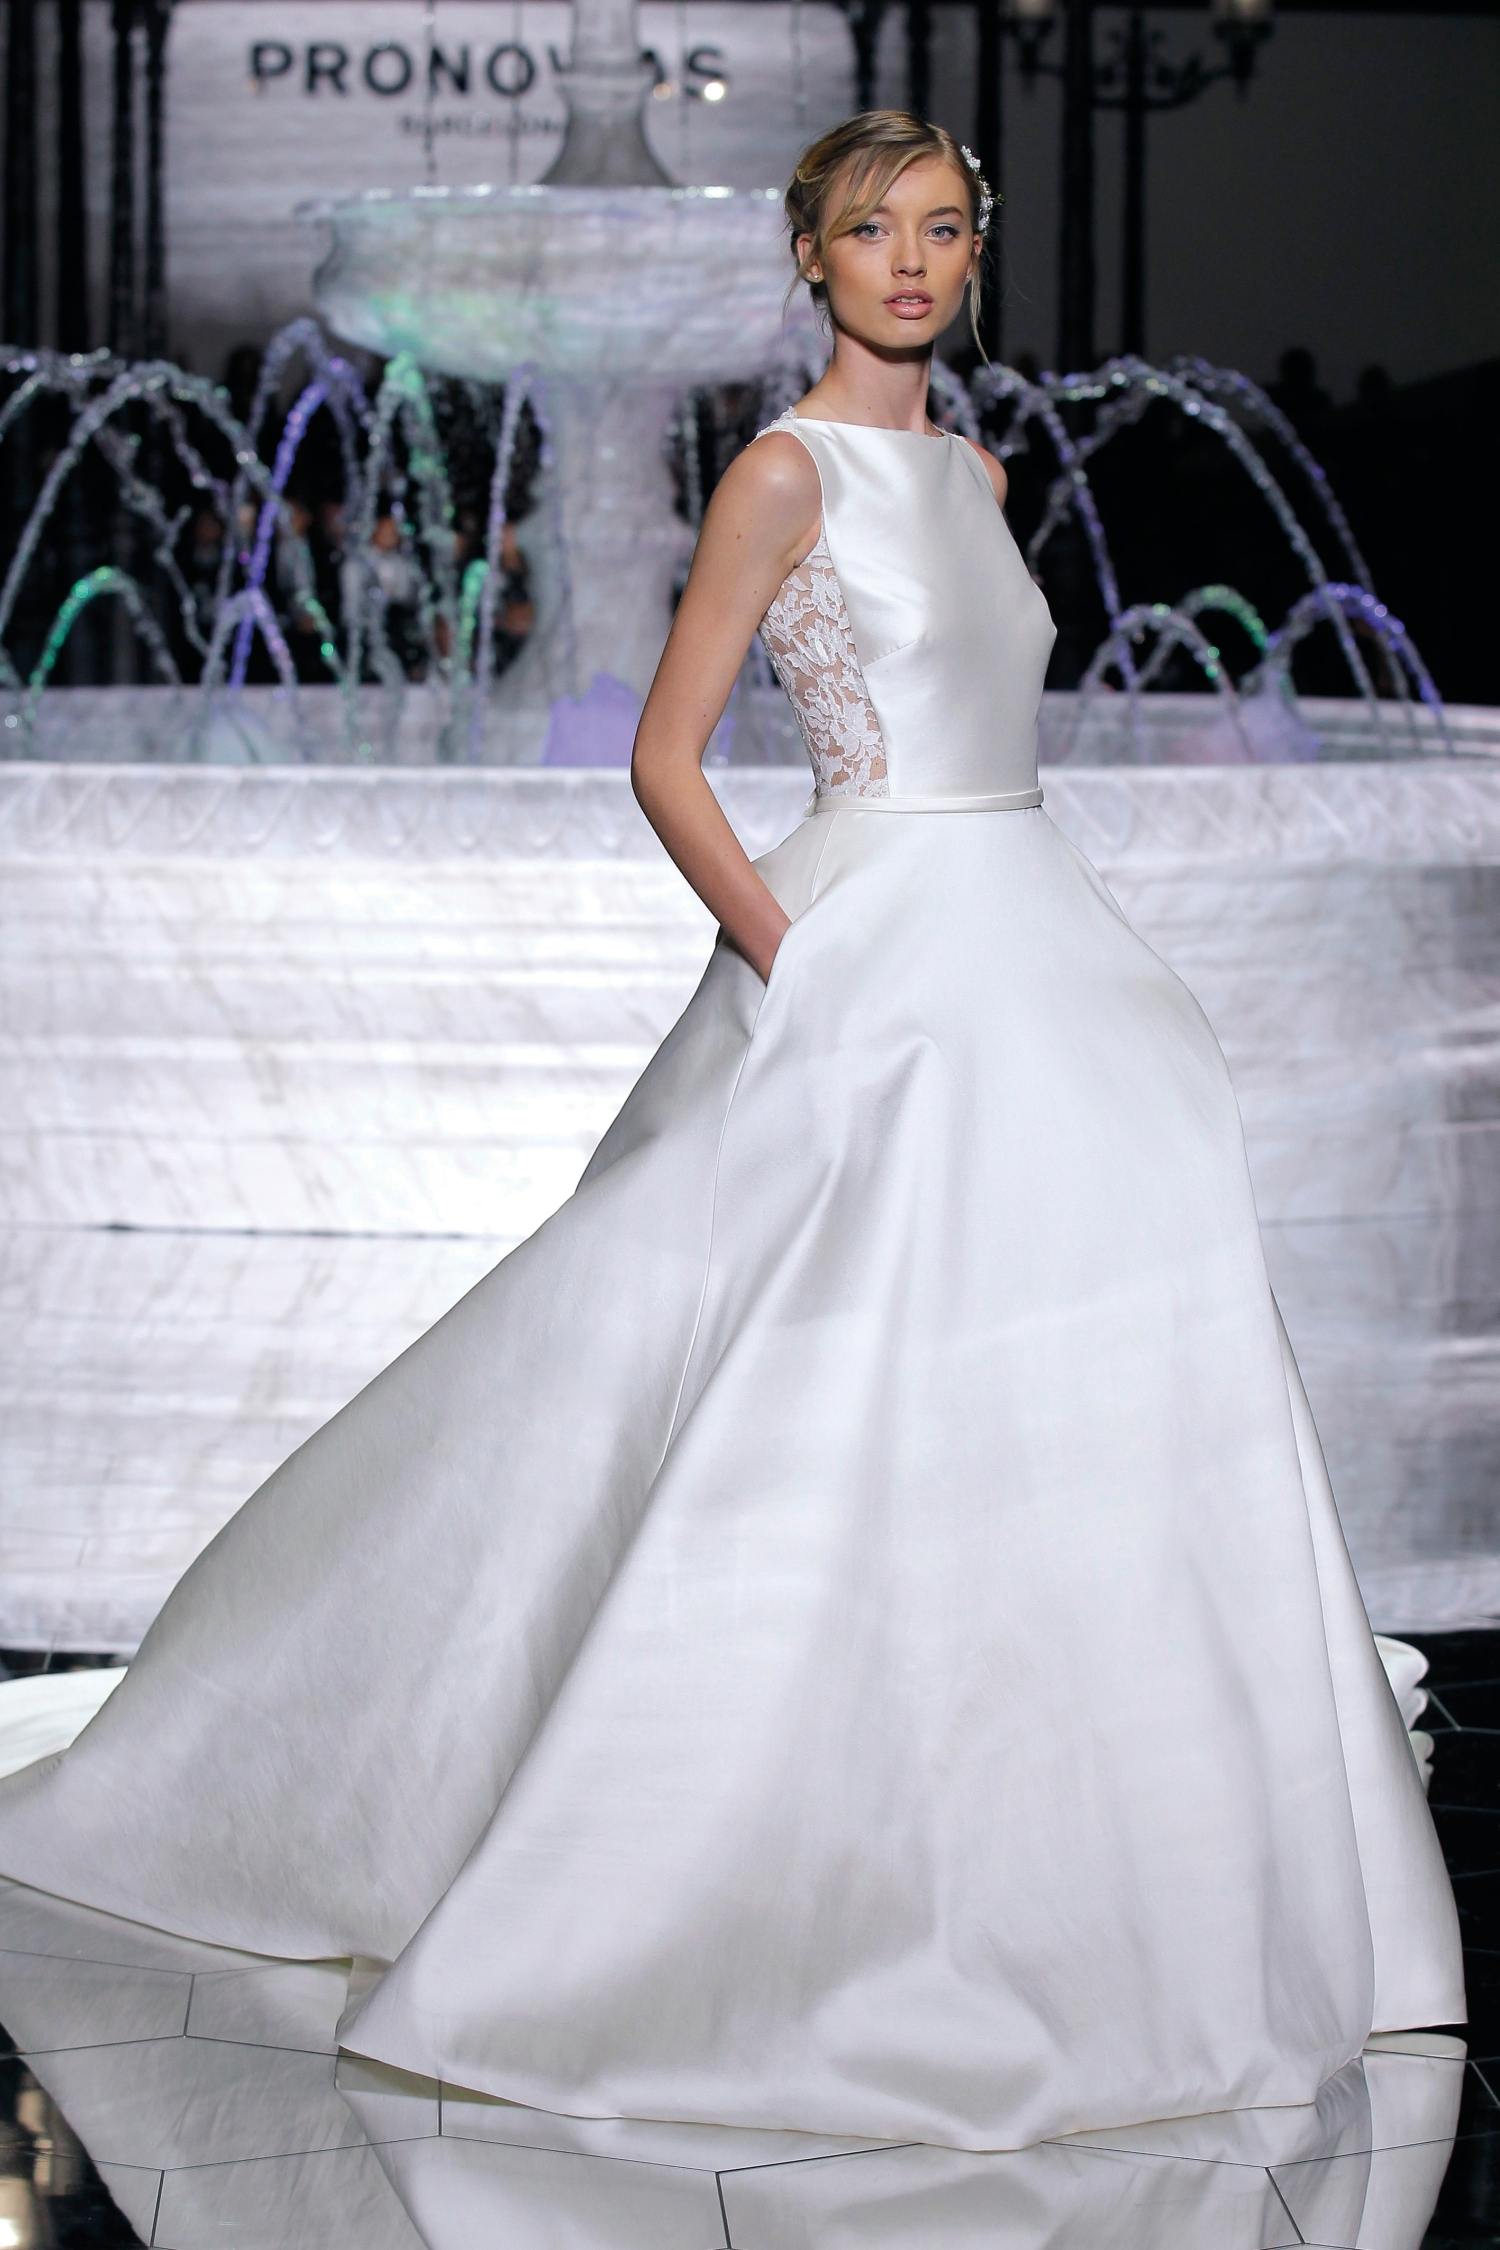 1-PRONOVIAS FASHION SHOW_Ronda